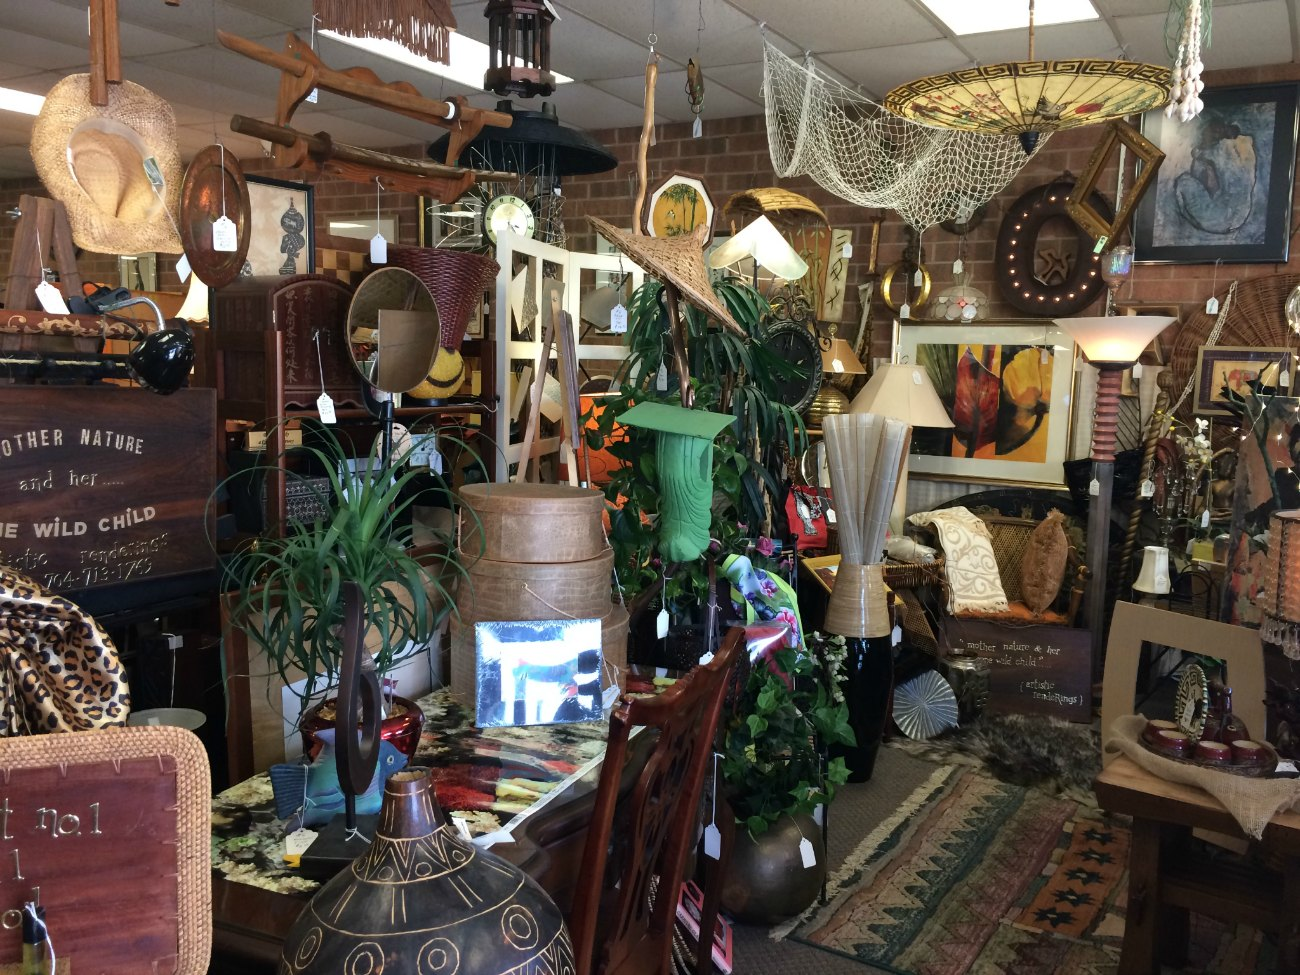 If you like cheap old stuff, stop skipping Hidden Treasures on your way to Sleepy Poet